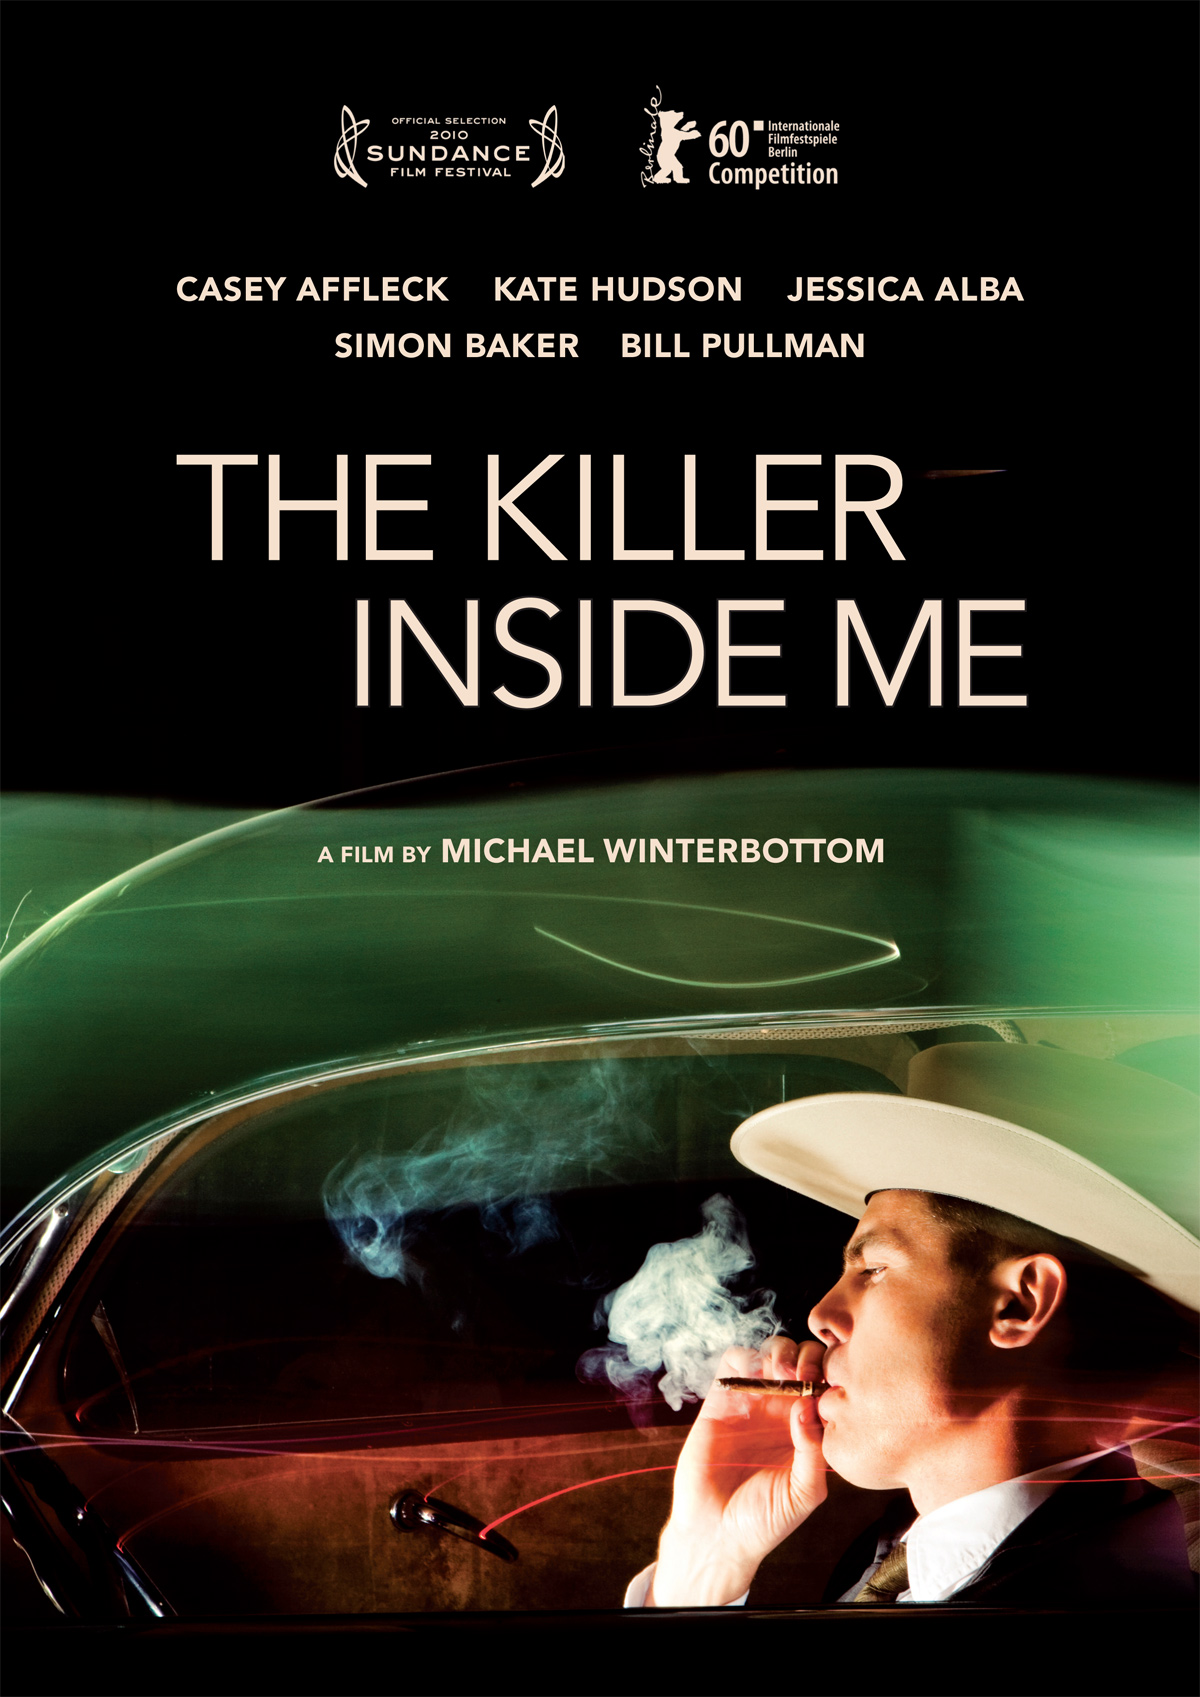 Resultado de imagen de the killer inside me movie